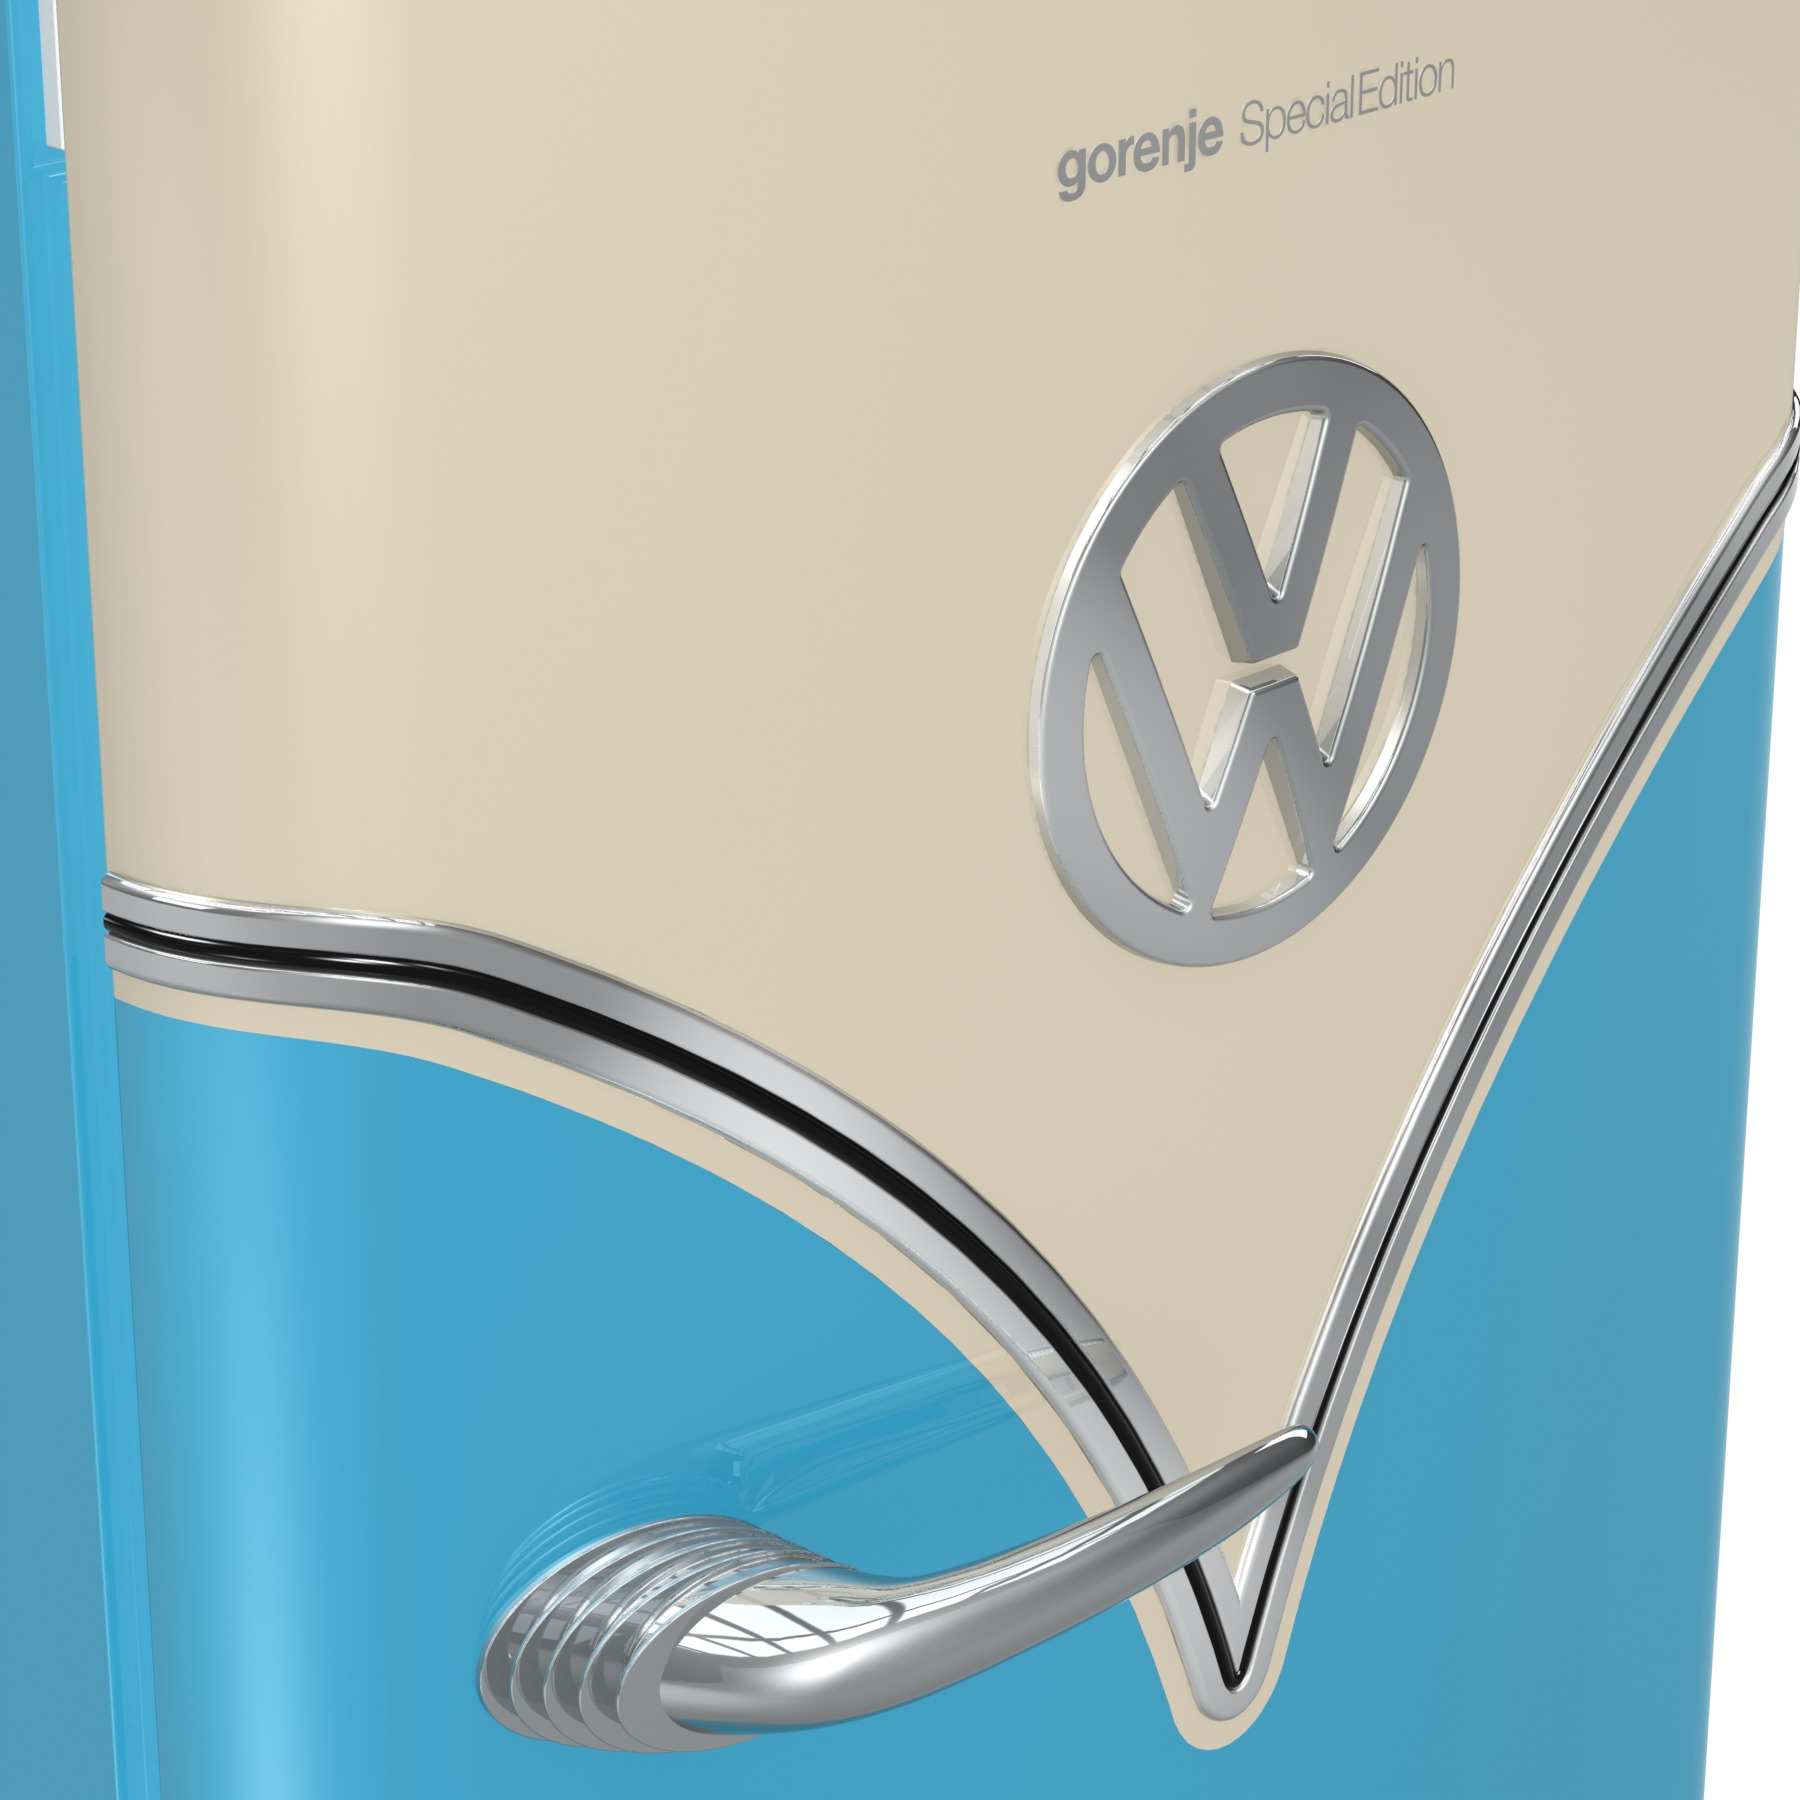 Gorenje VW fridge detail